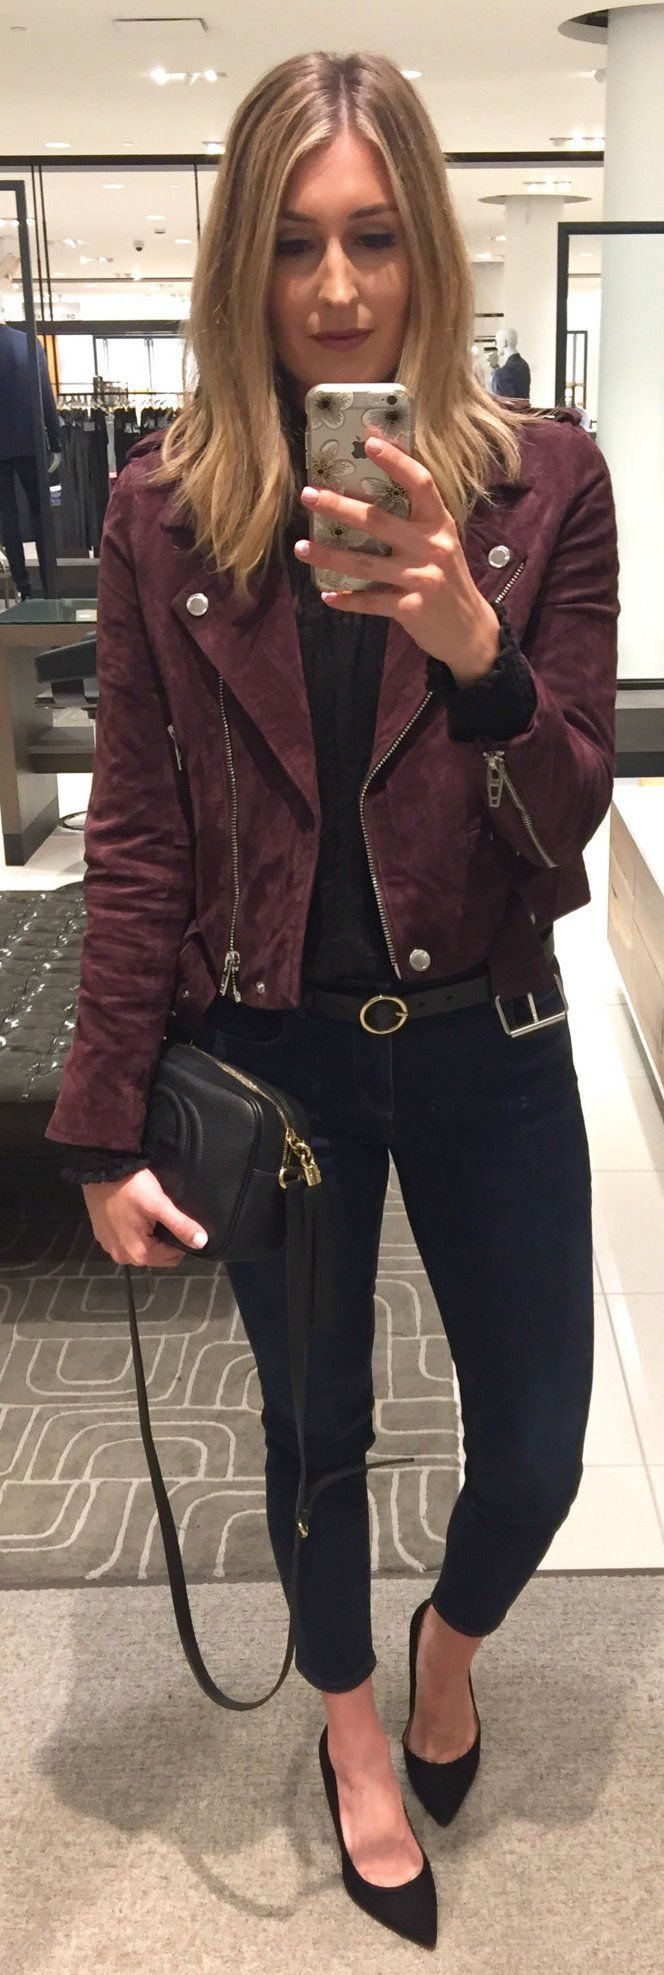 #winter #fashion /  Purple Jacket / Black Skinny Jeans / Black Pumps / Black Leather Leather Shoulder Bag